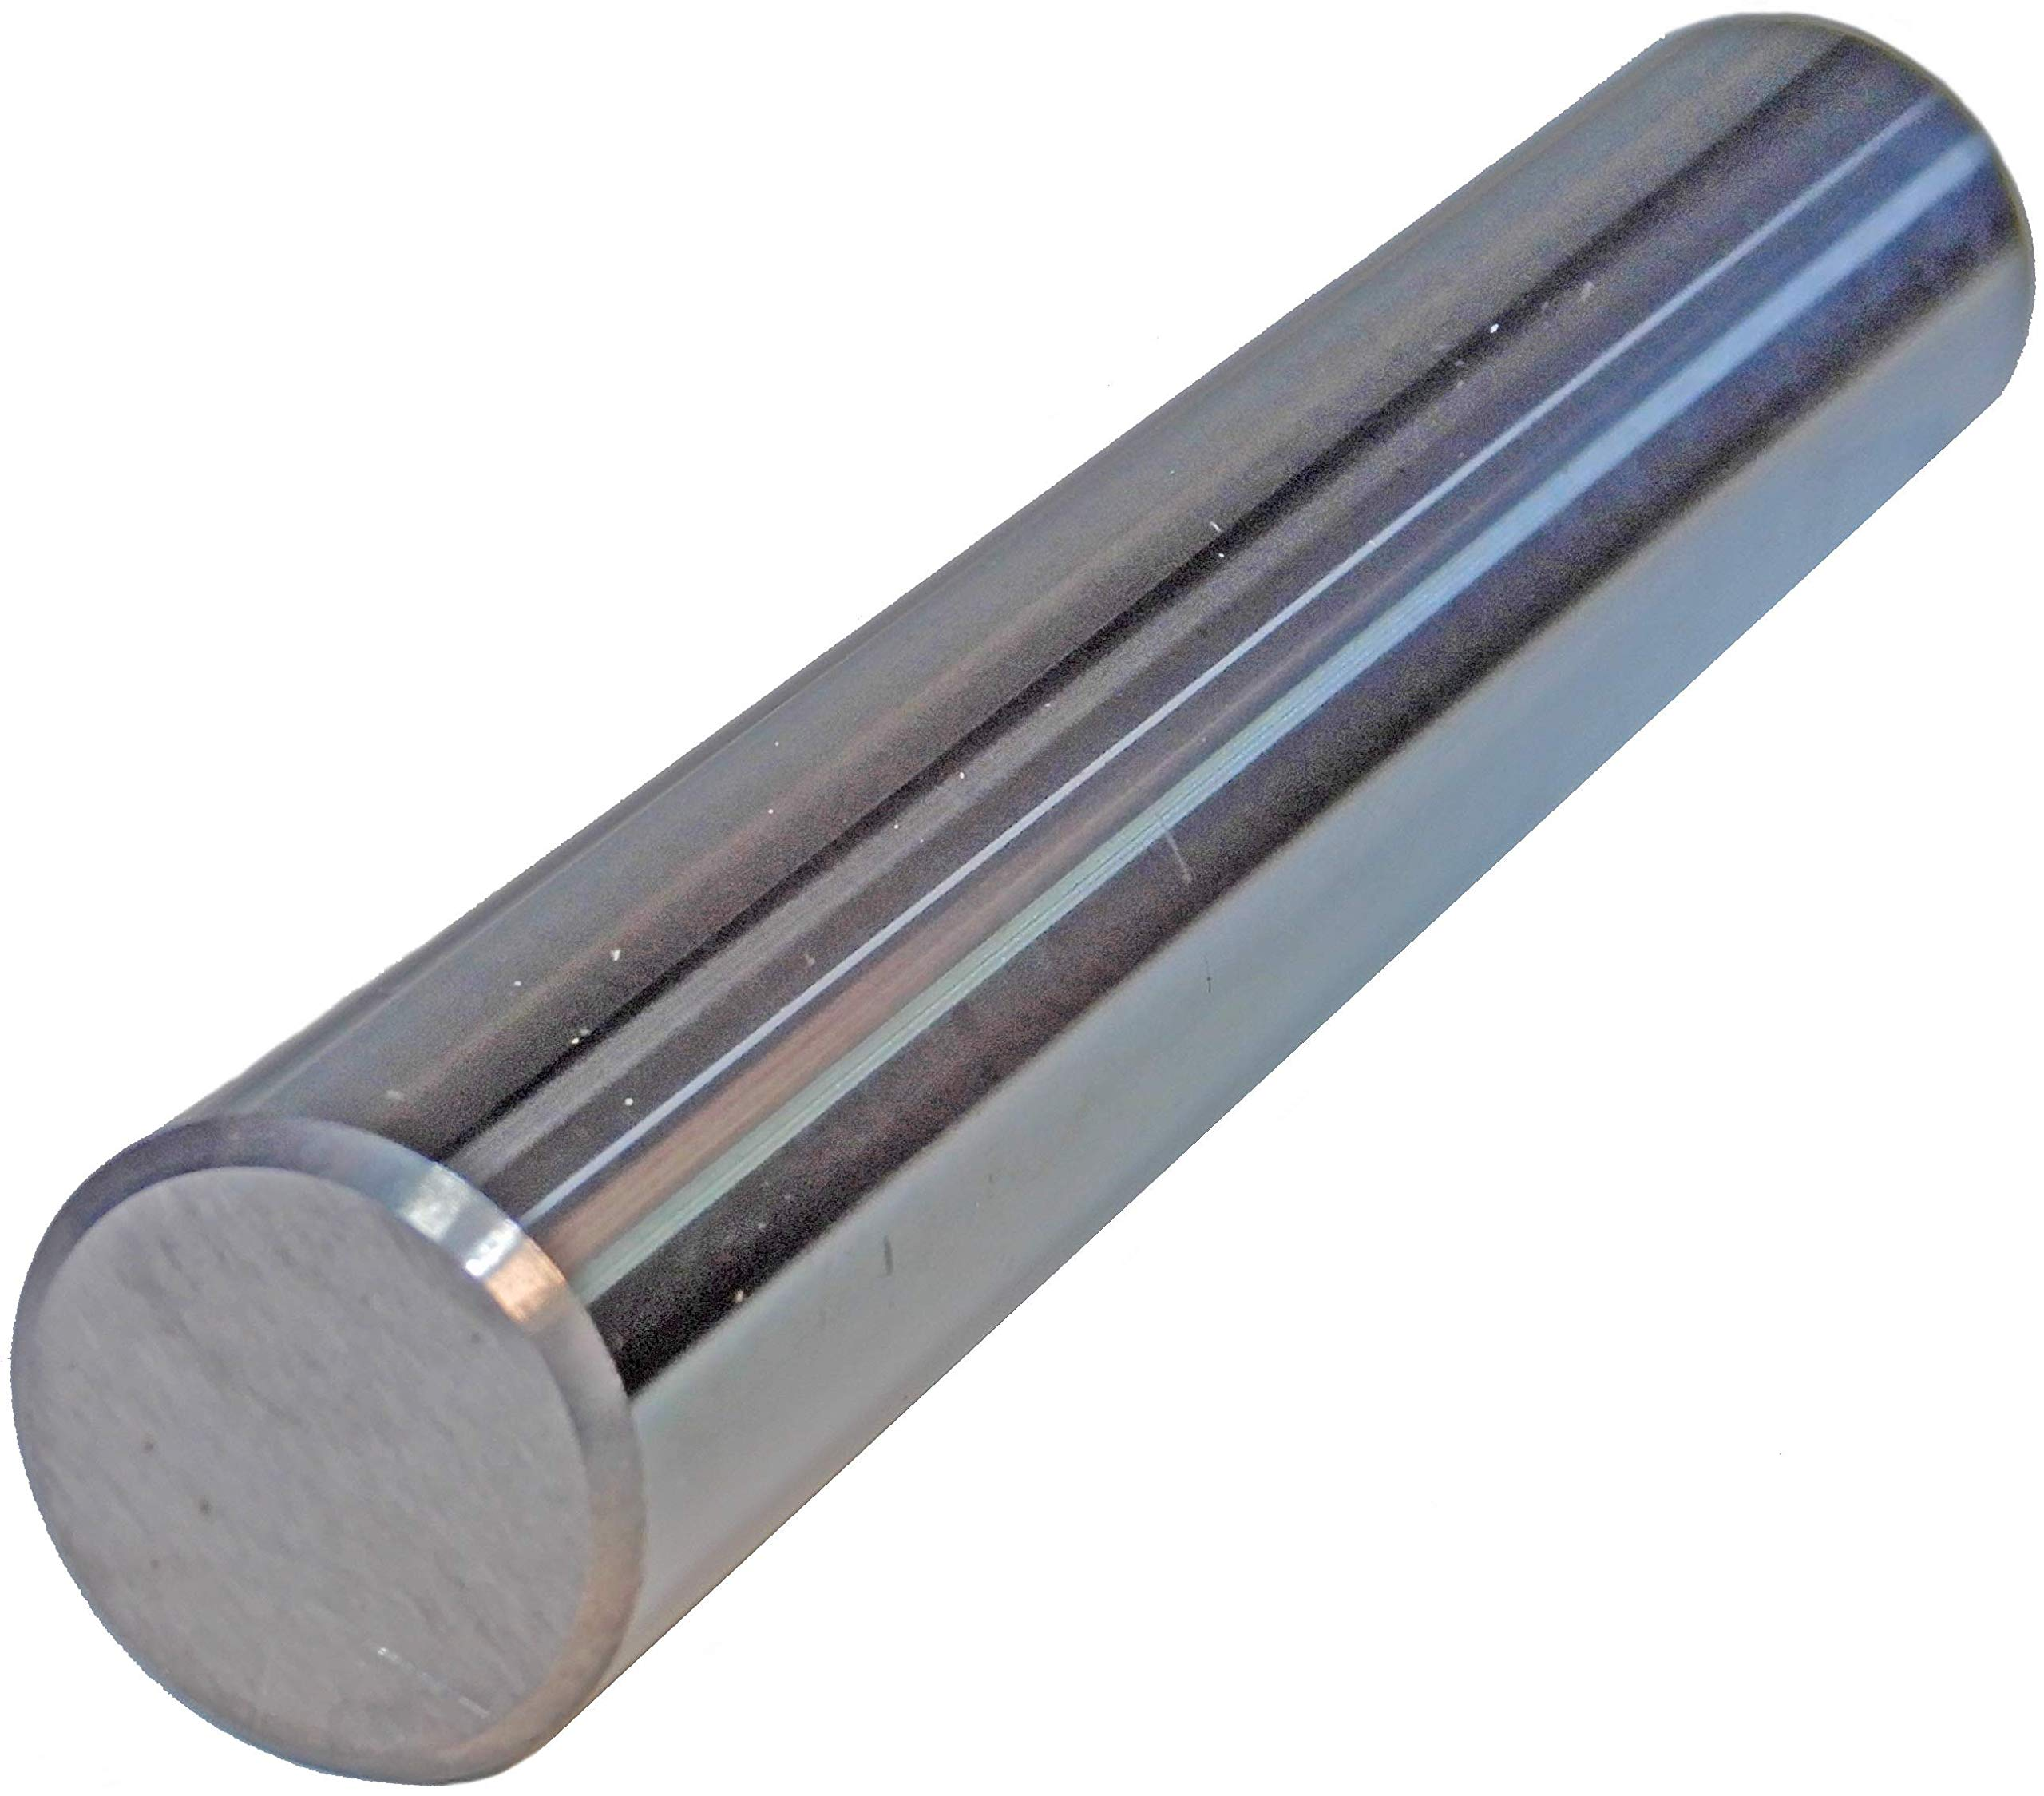 Castlebar 5/8'' X 6'', Grade 9008/C2, Ground Polished Chamfered Cemented Tungsten Carbide Round Rod by Castlebar